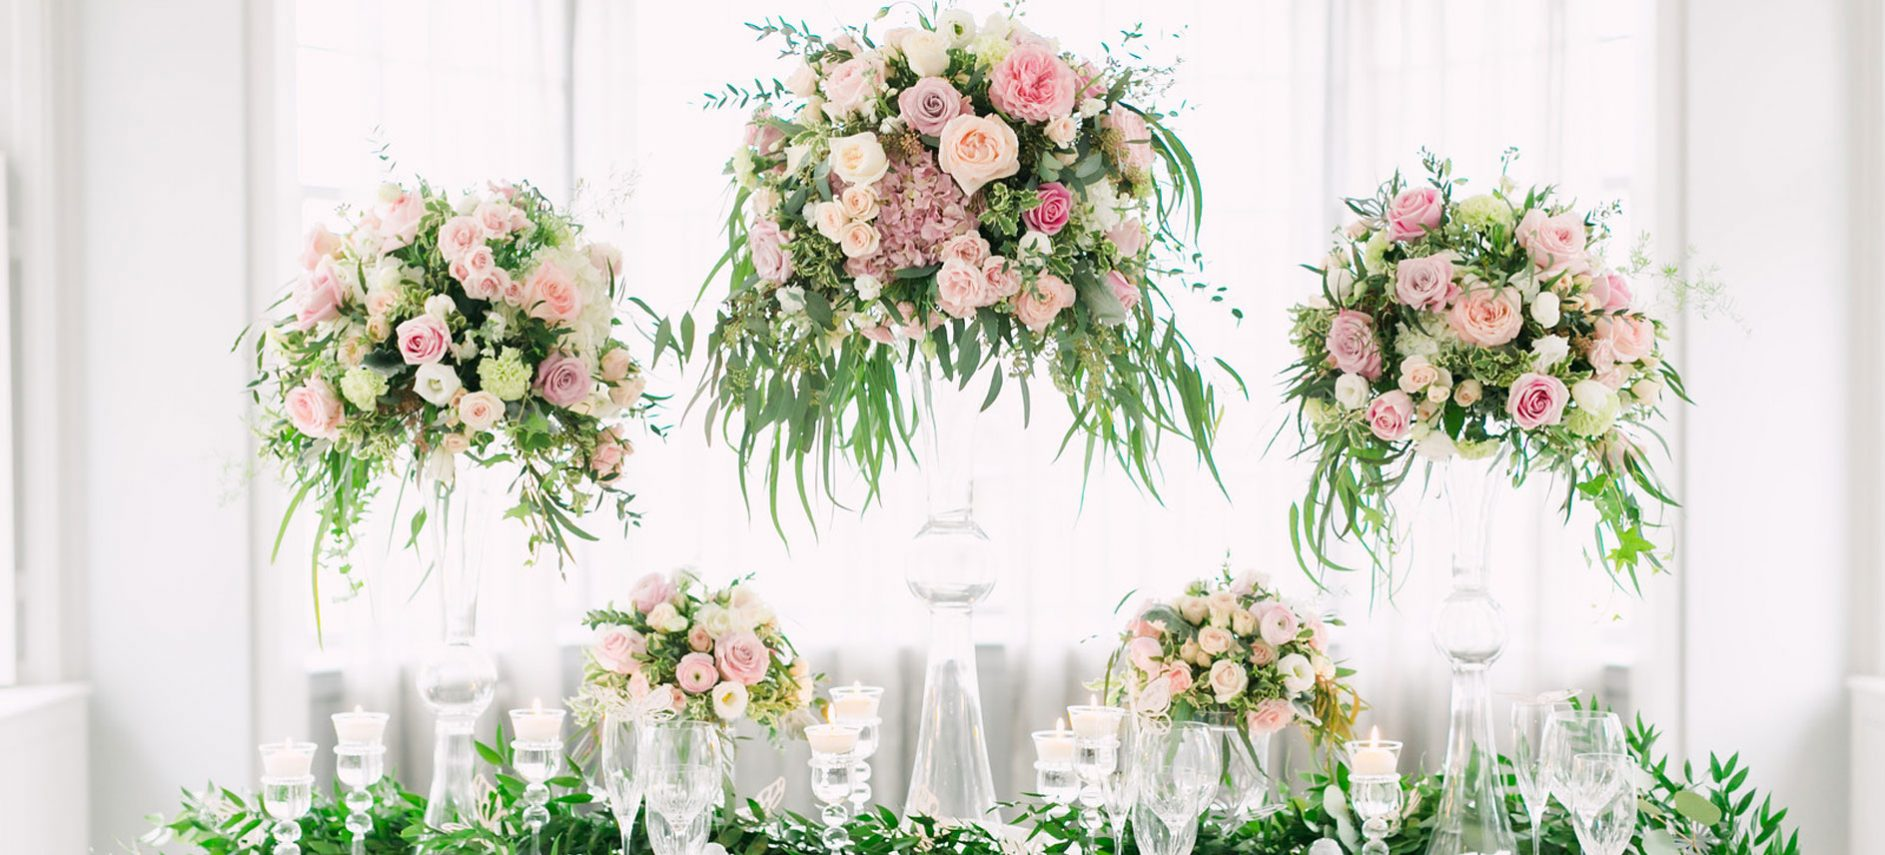 Wedding Decorations Toronto Flowers Centerpieces